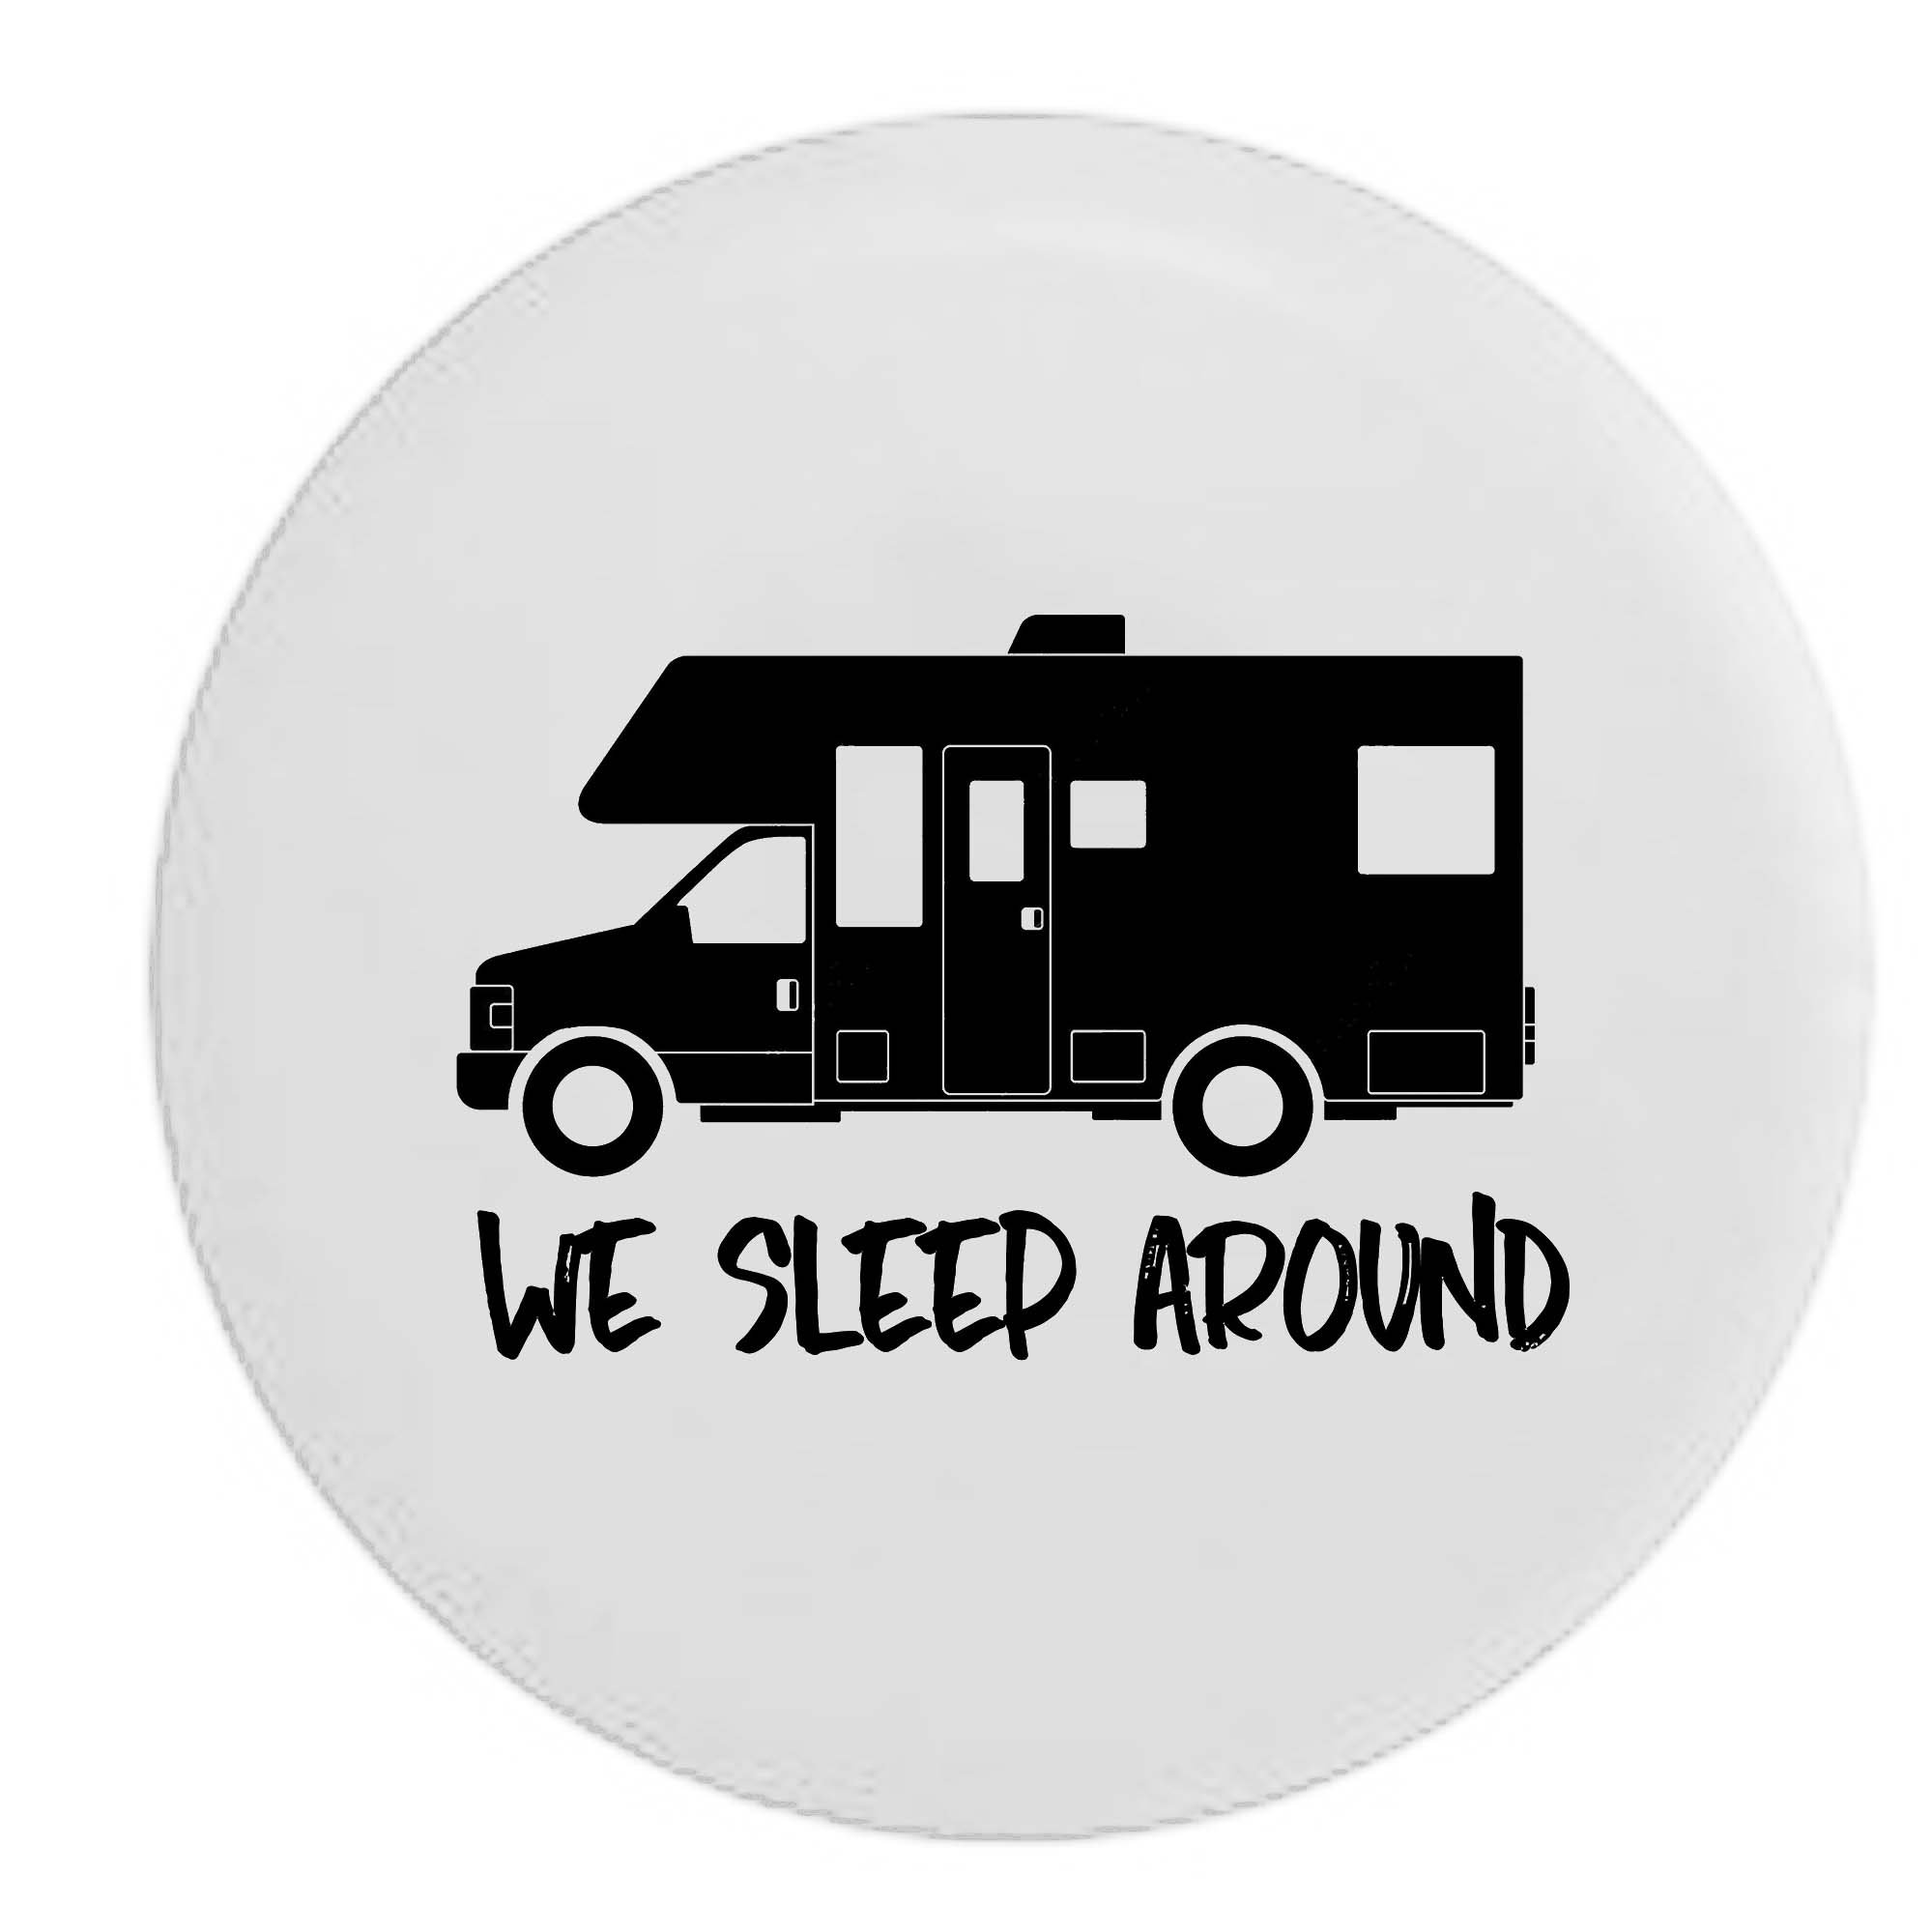 Pike Outdoors We Sleep Around Motorhome RV Camper Spare Tire Cover OEM Vinyl White 32 in by Pike Outdoors